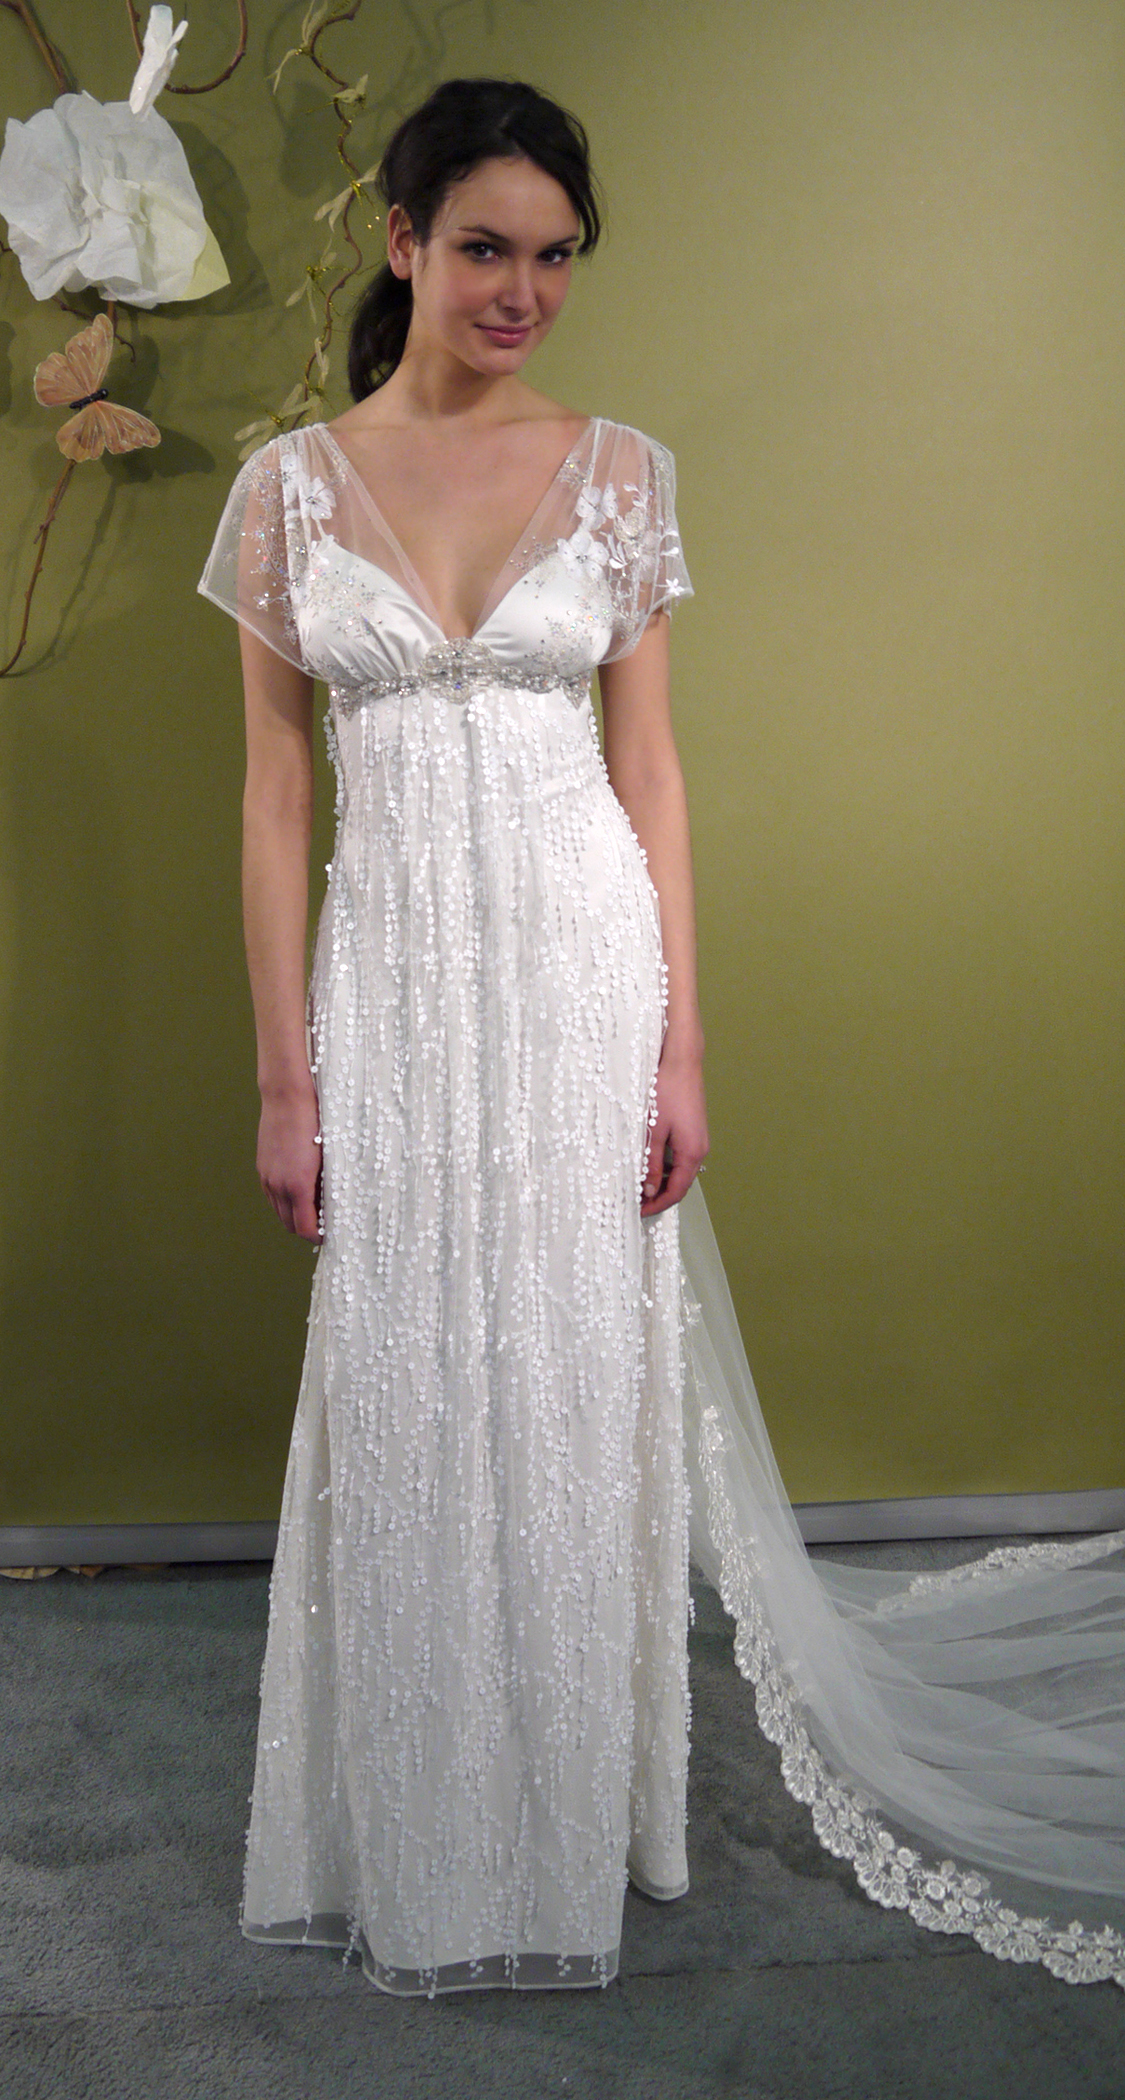 Fall-2011-wedding-dress-frances-claire-pettibone-bridal-gown-large.original